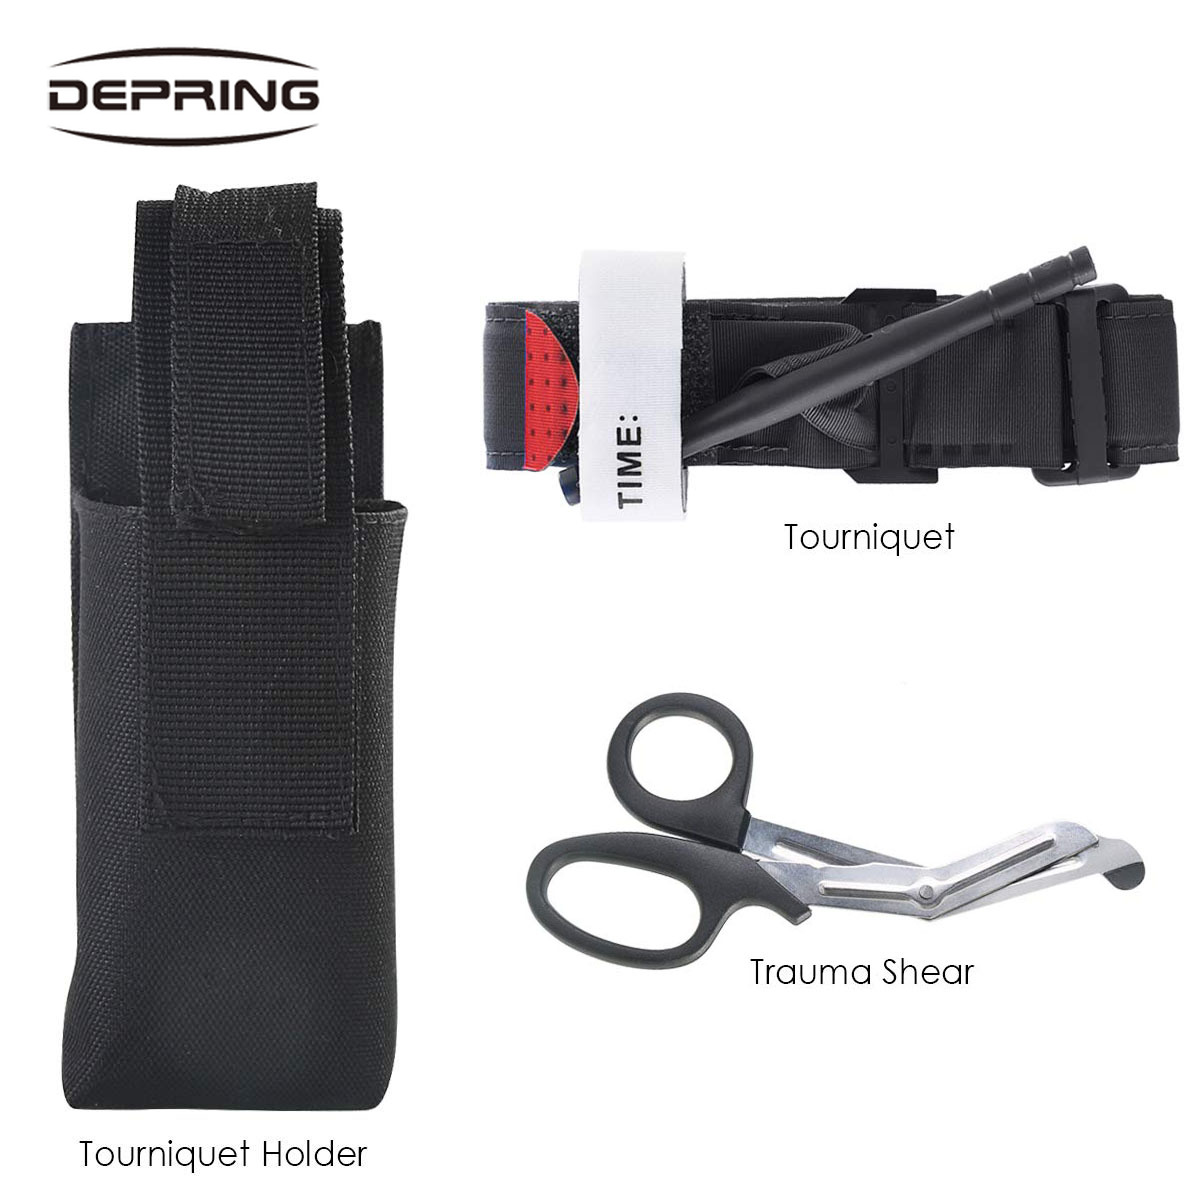 One Hand Tourniquet Trauma Shear Molle Pouch First Aid Kit For Car Vehicle Outdoor Camping Hiking Hunting  Survival Equipment